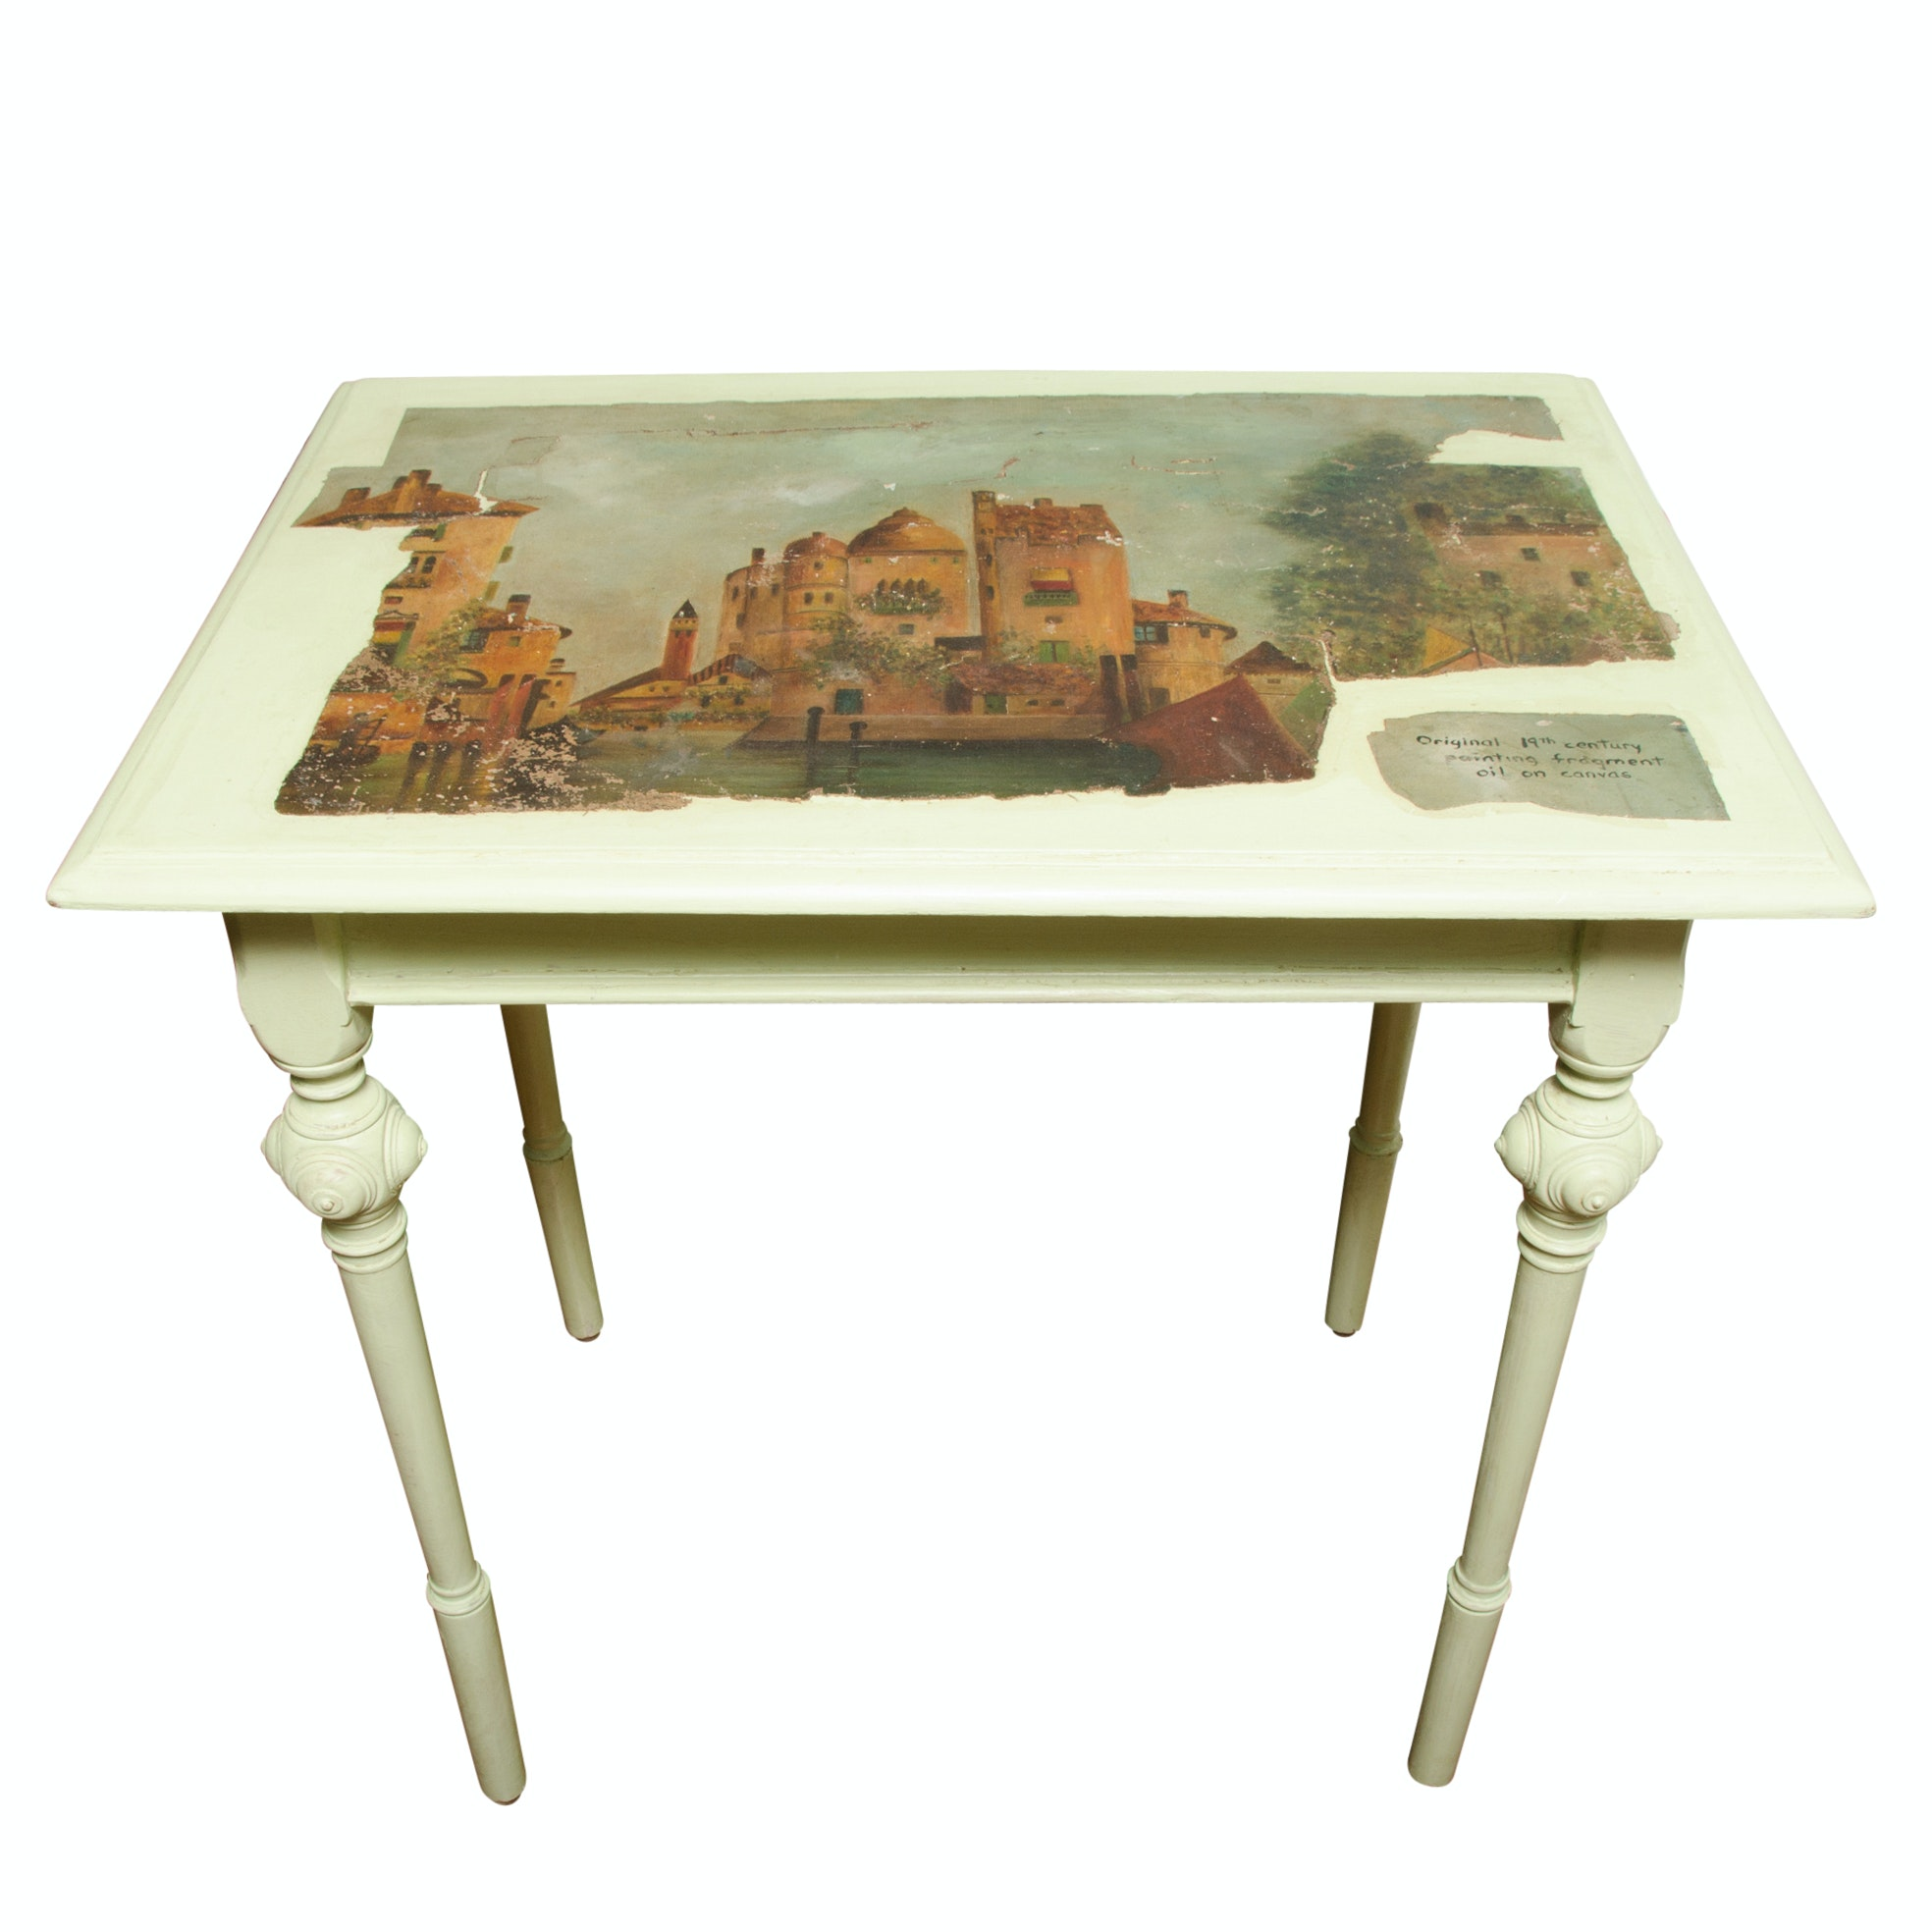 Vintage Painted Table with 19th Century Oil Painting Fragment